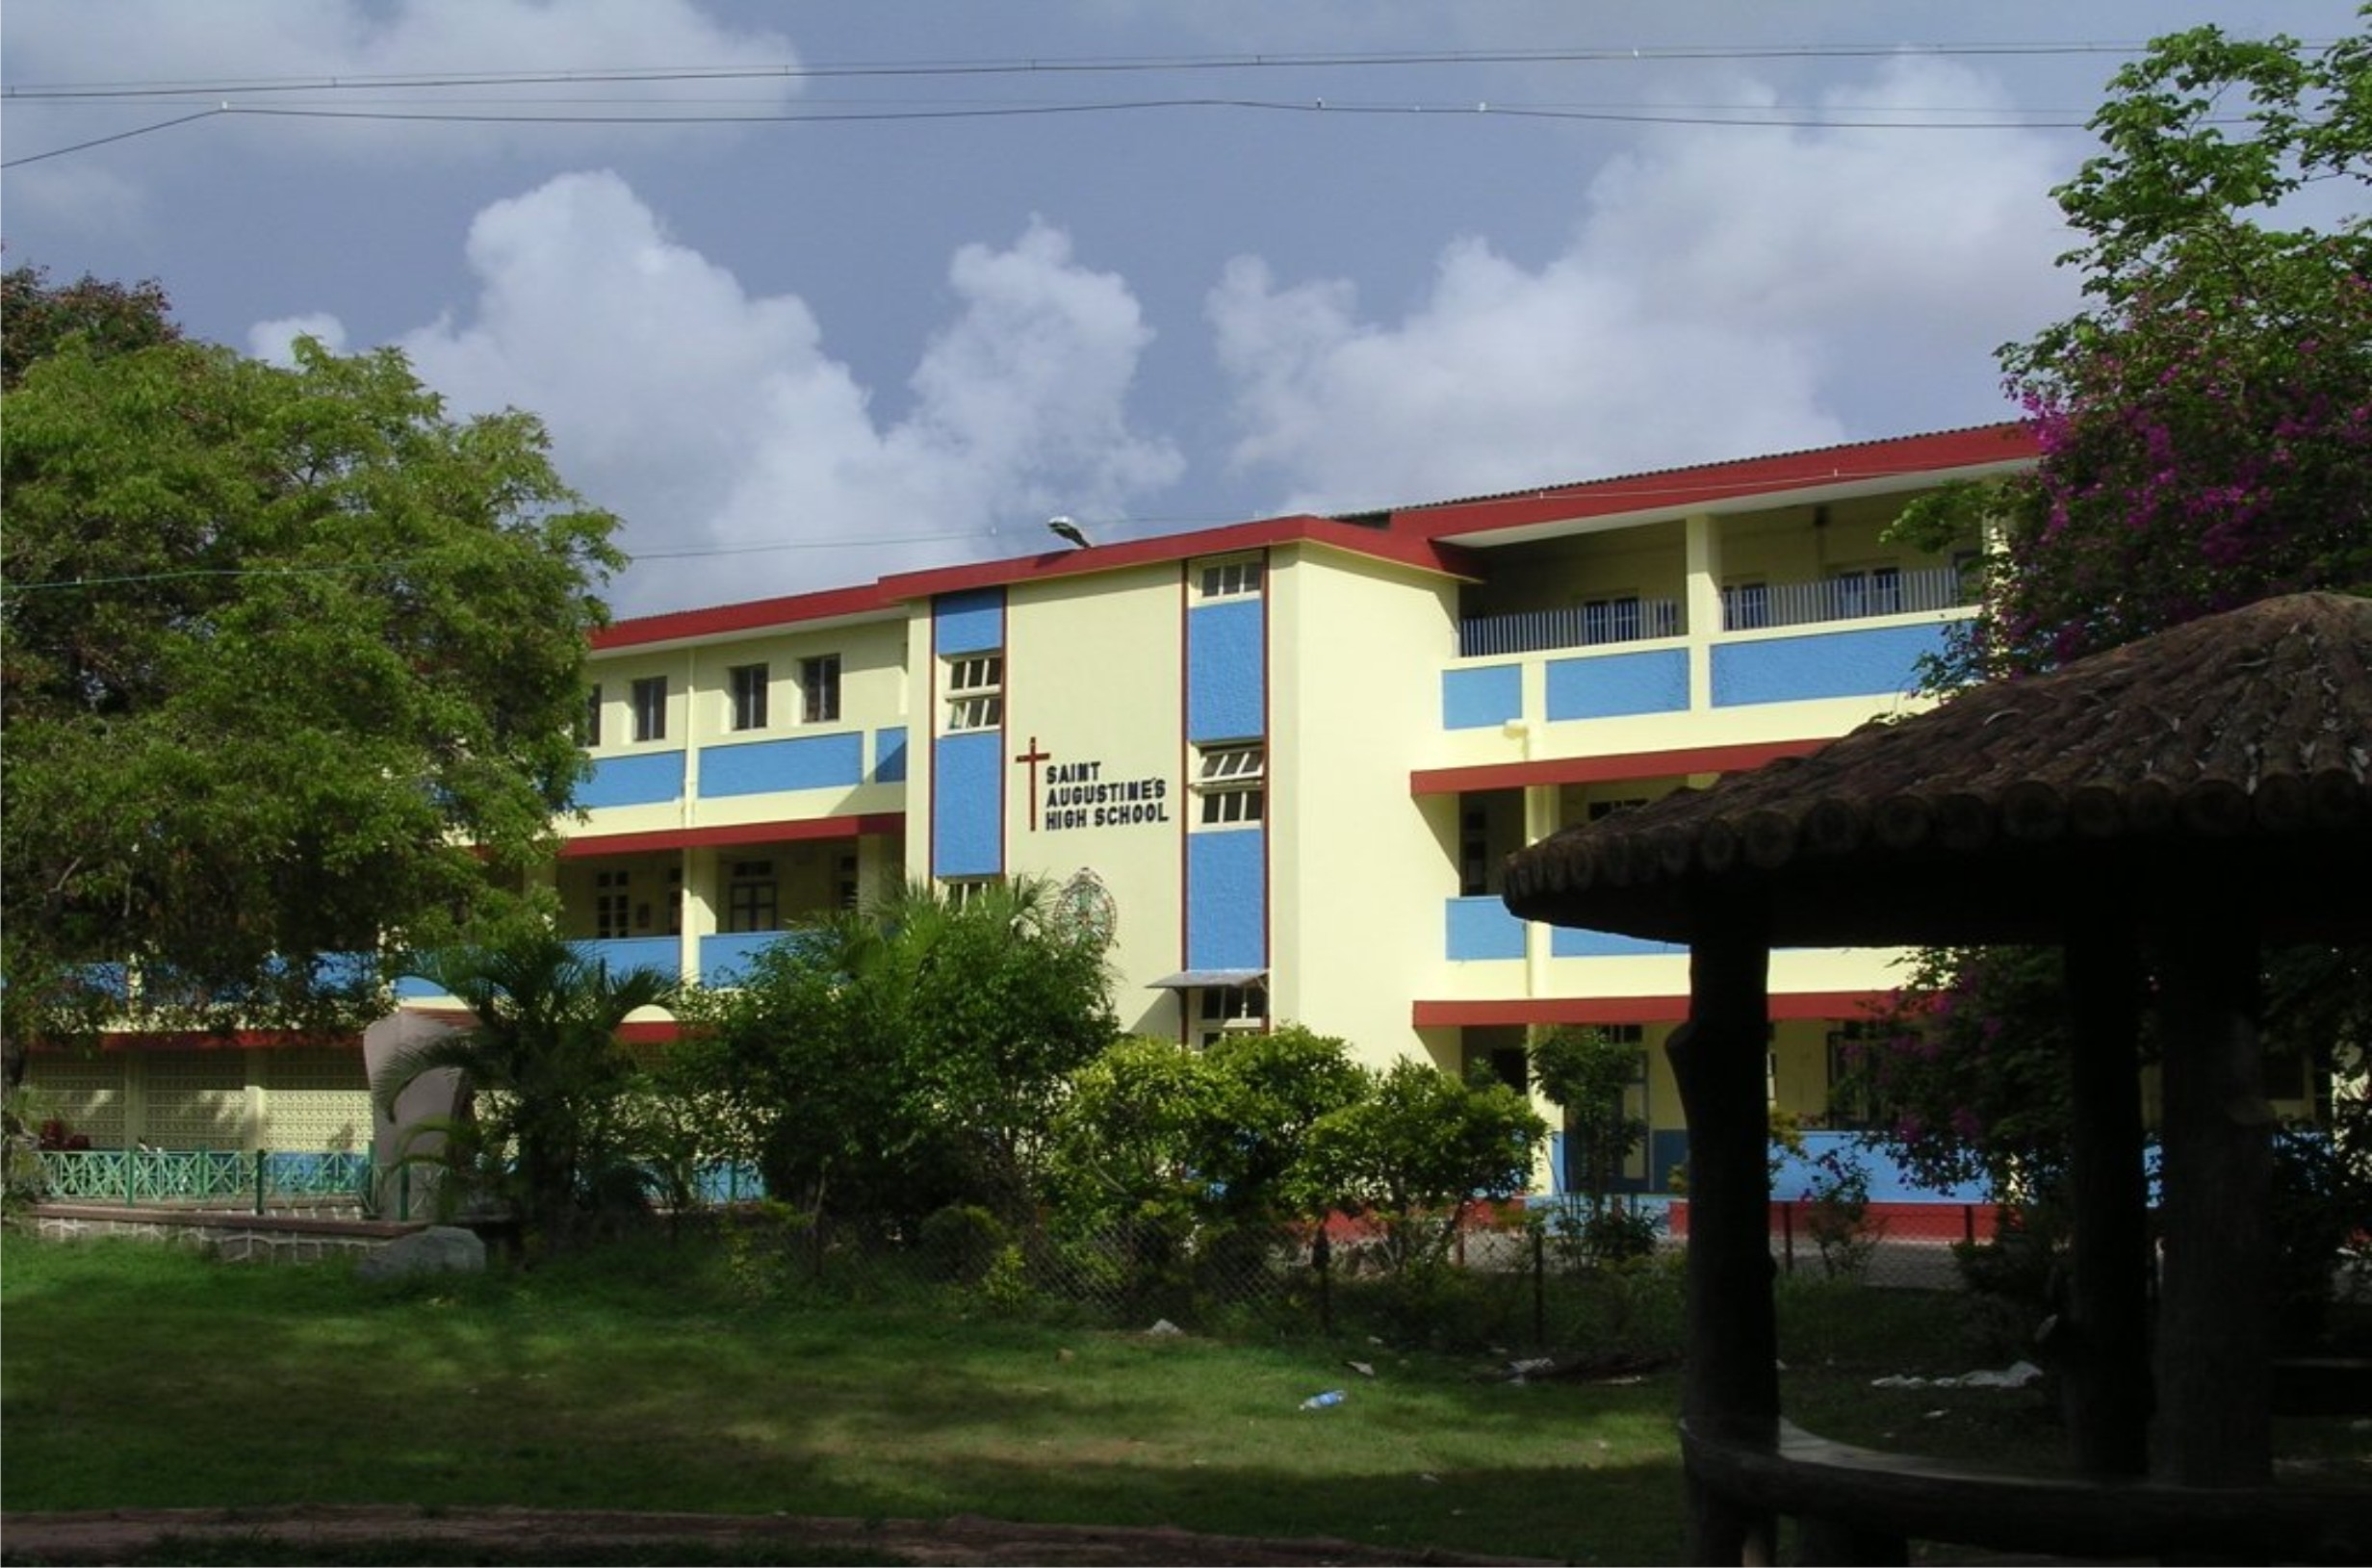 St. Augustine's High School, Vasai